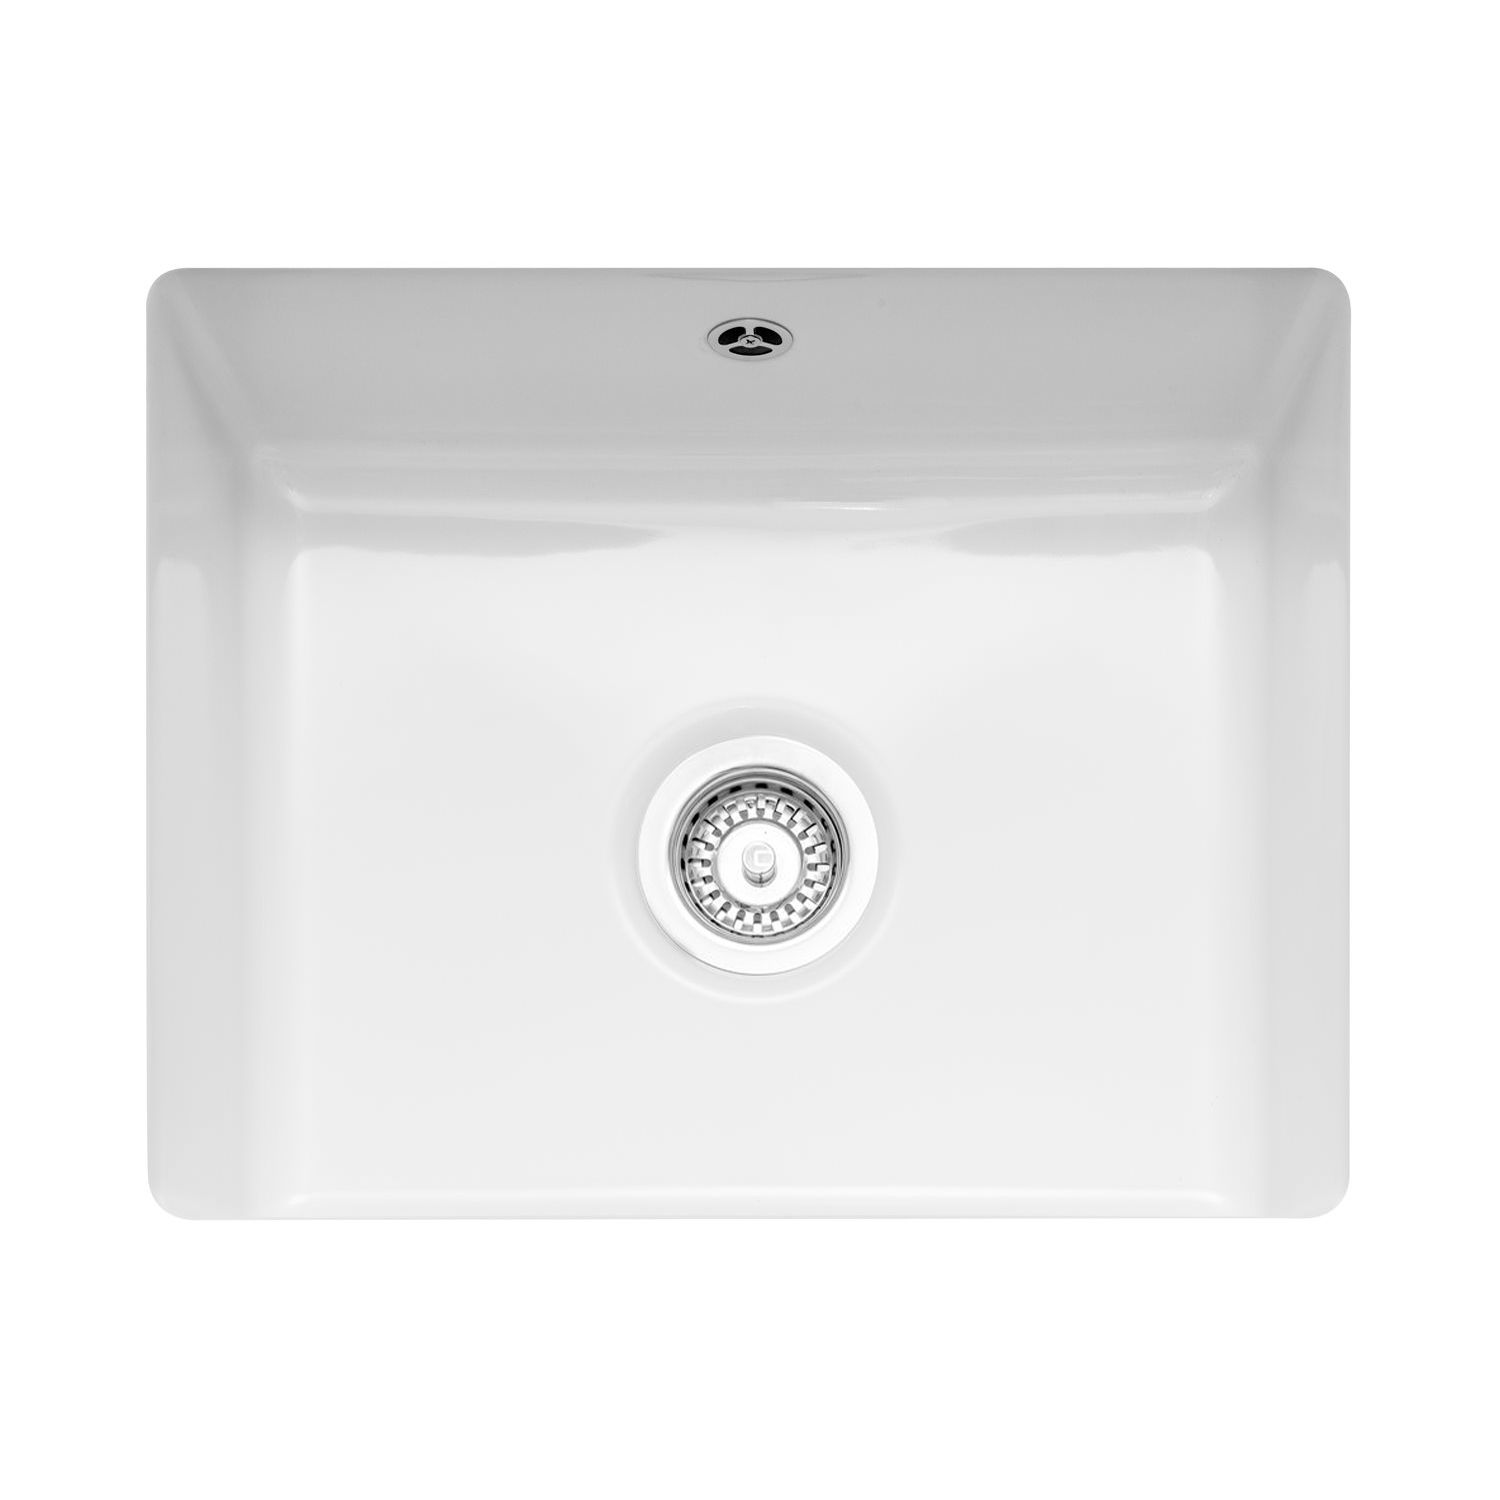 Caple Ettra 600 Undermount Kitchen Sink - Sinks-Taps.com